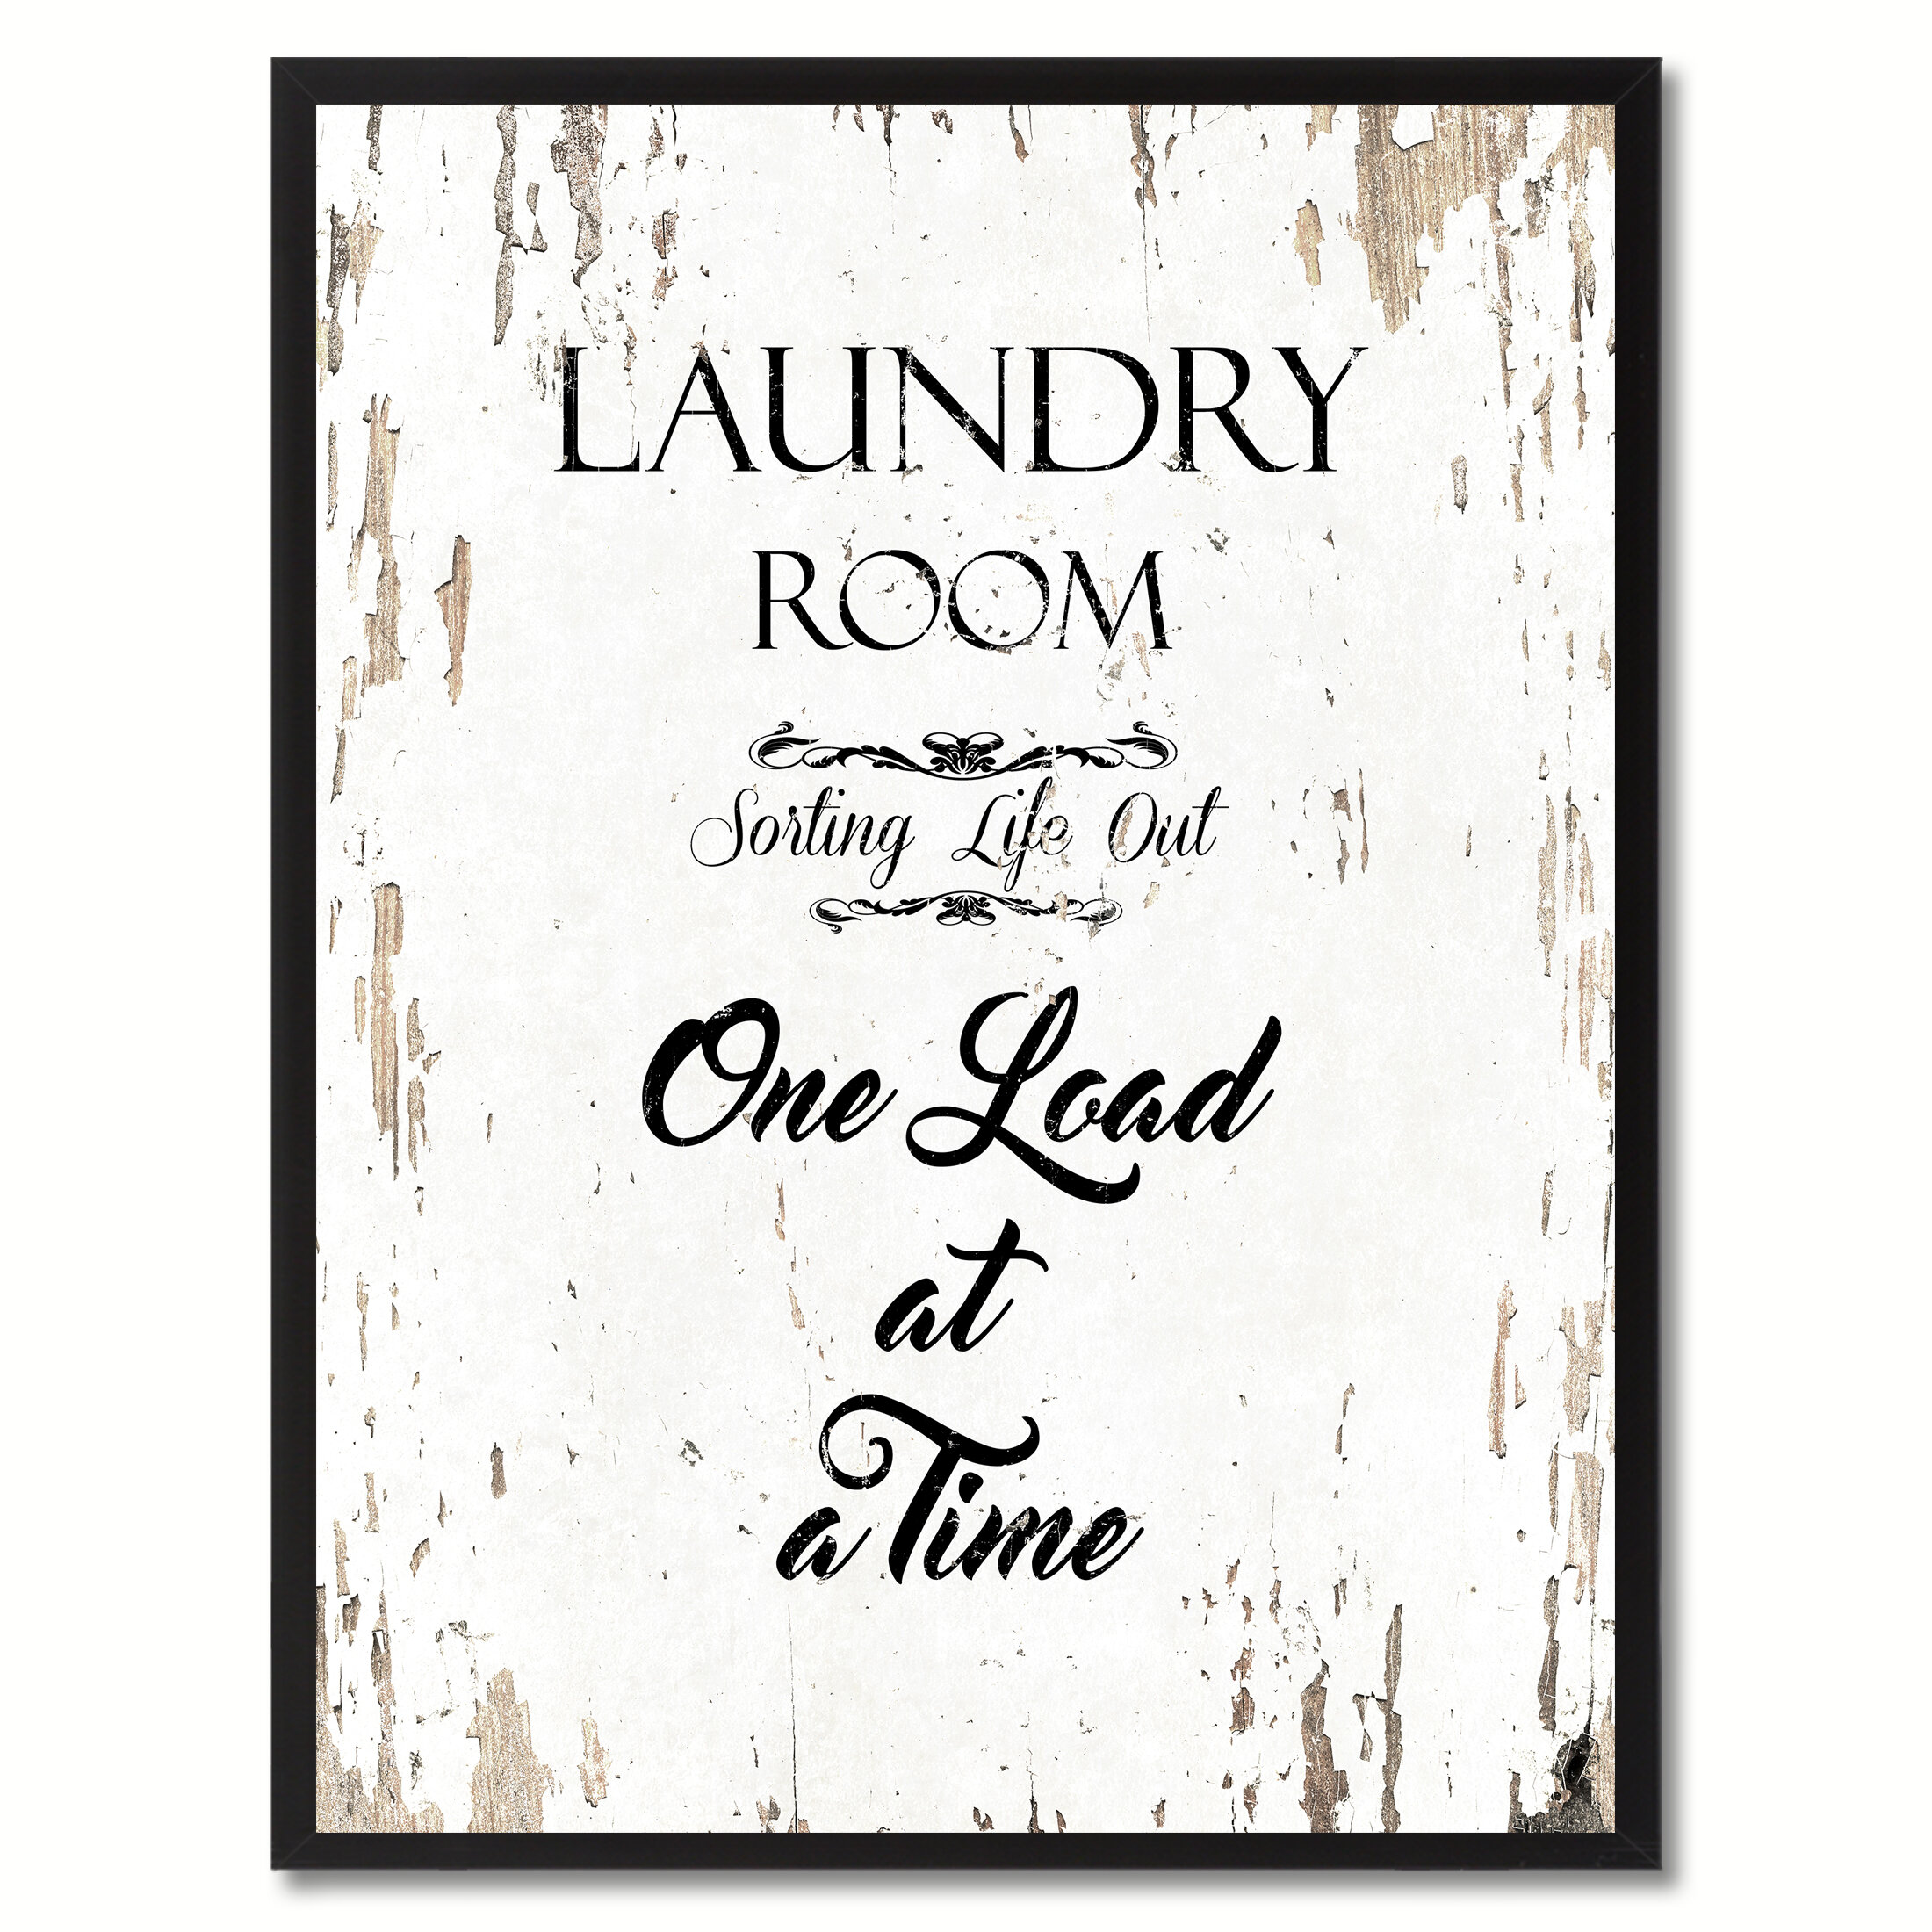 Laundry Room Sorting Life Out One Load At A Time Framed Textual Art On Canvas Reviews Joss Main